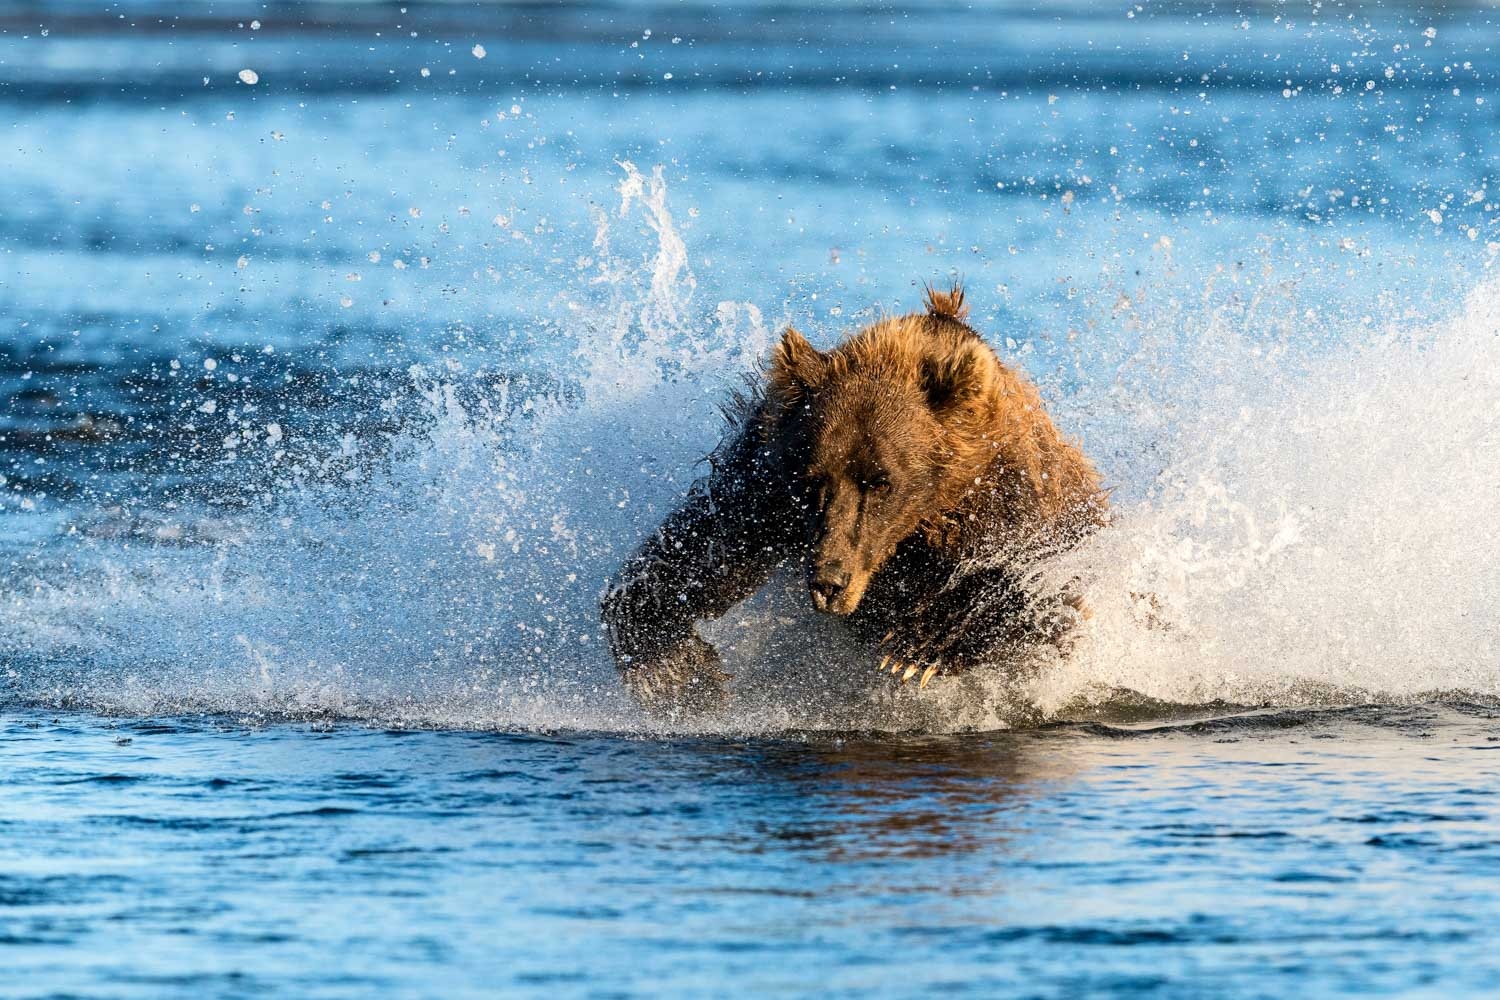 A grizzly bear launches himself at a darting salmon, Silver Salmon Creek; Nikon D810, 500mm, f/6.3, 1/2000s, ISO 800